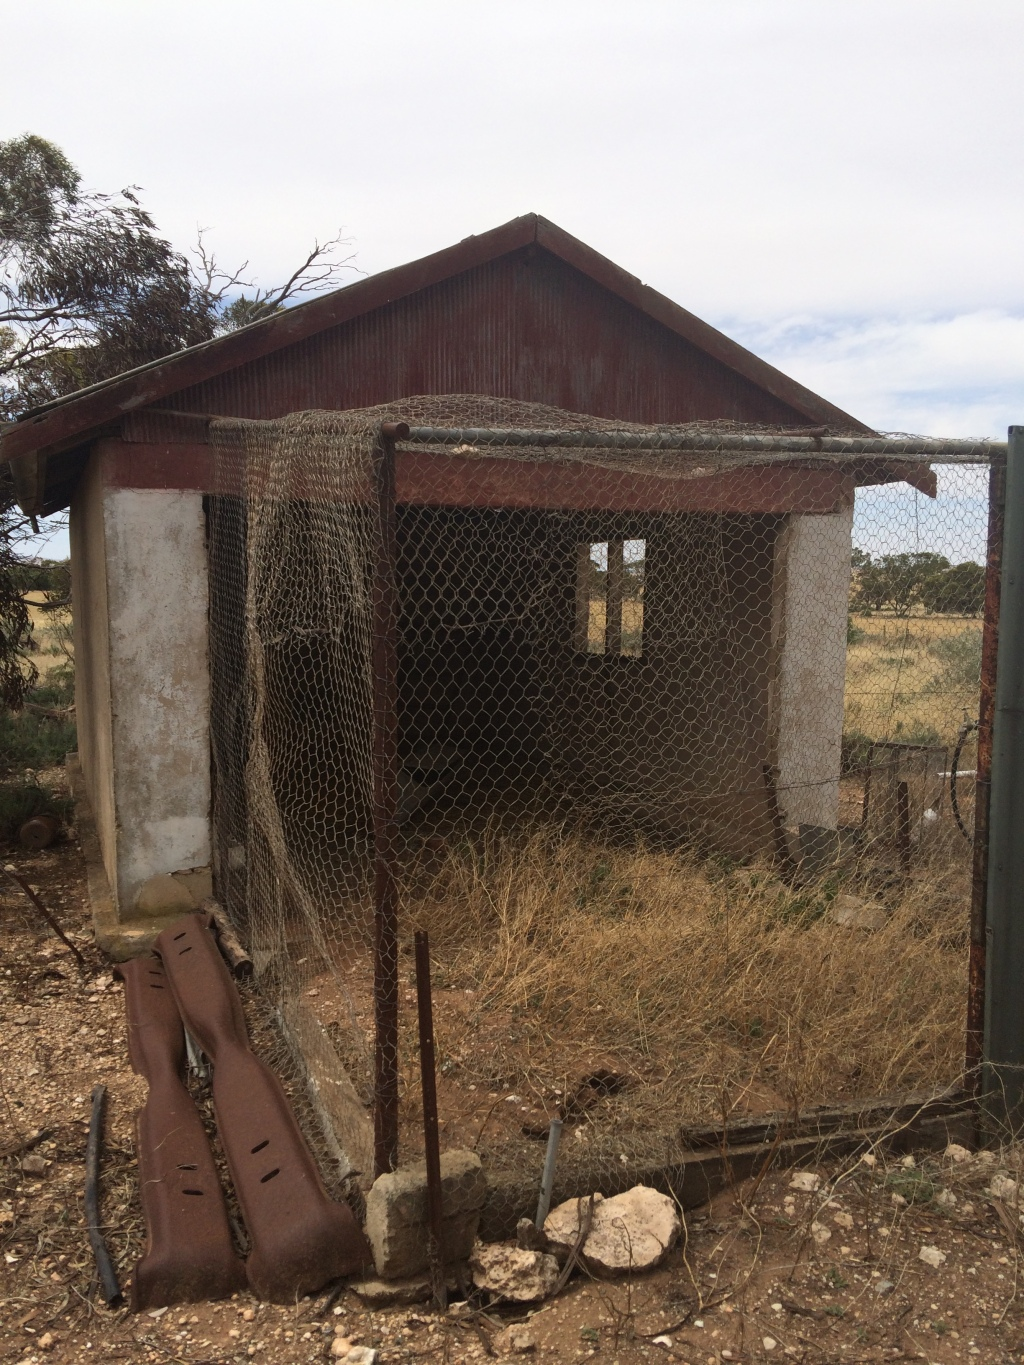 The last owners used this as a chook shed. I'm not sure what it was originally, but there are other foundations around. It might've been part of an original house.